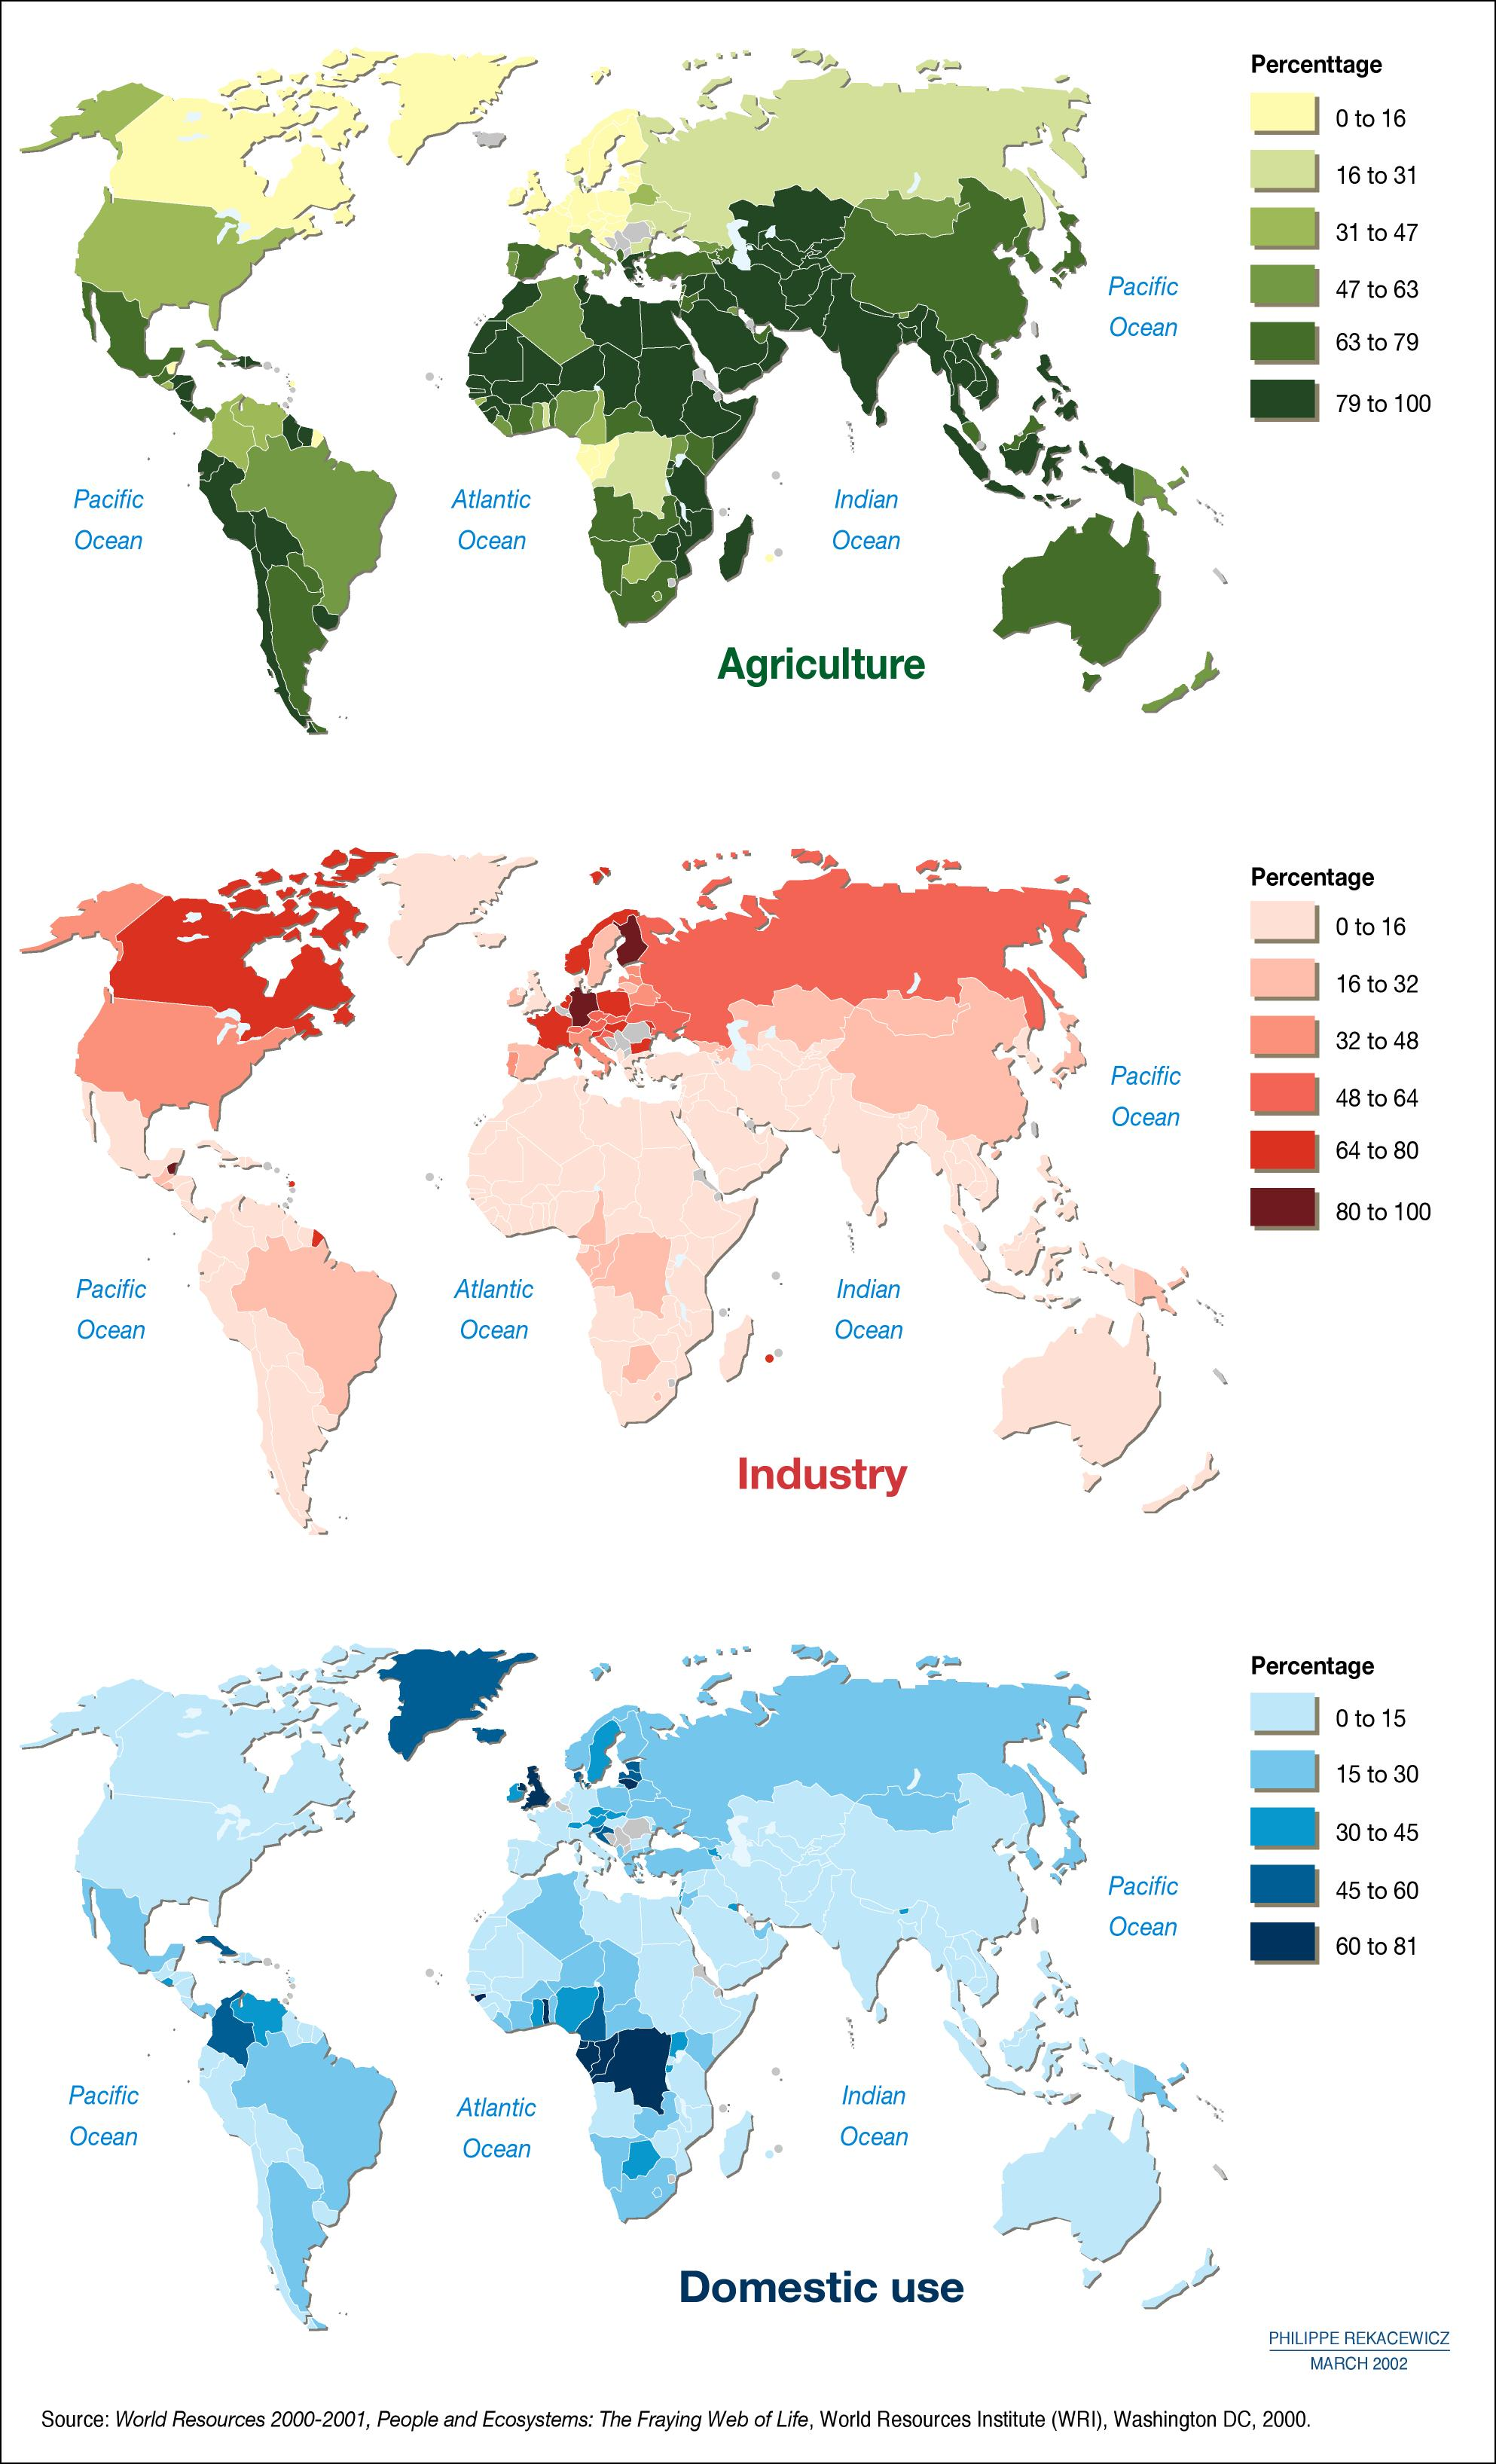 freshwater use by sector.jpg